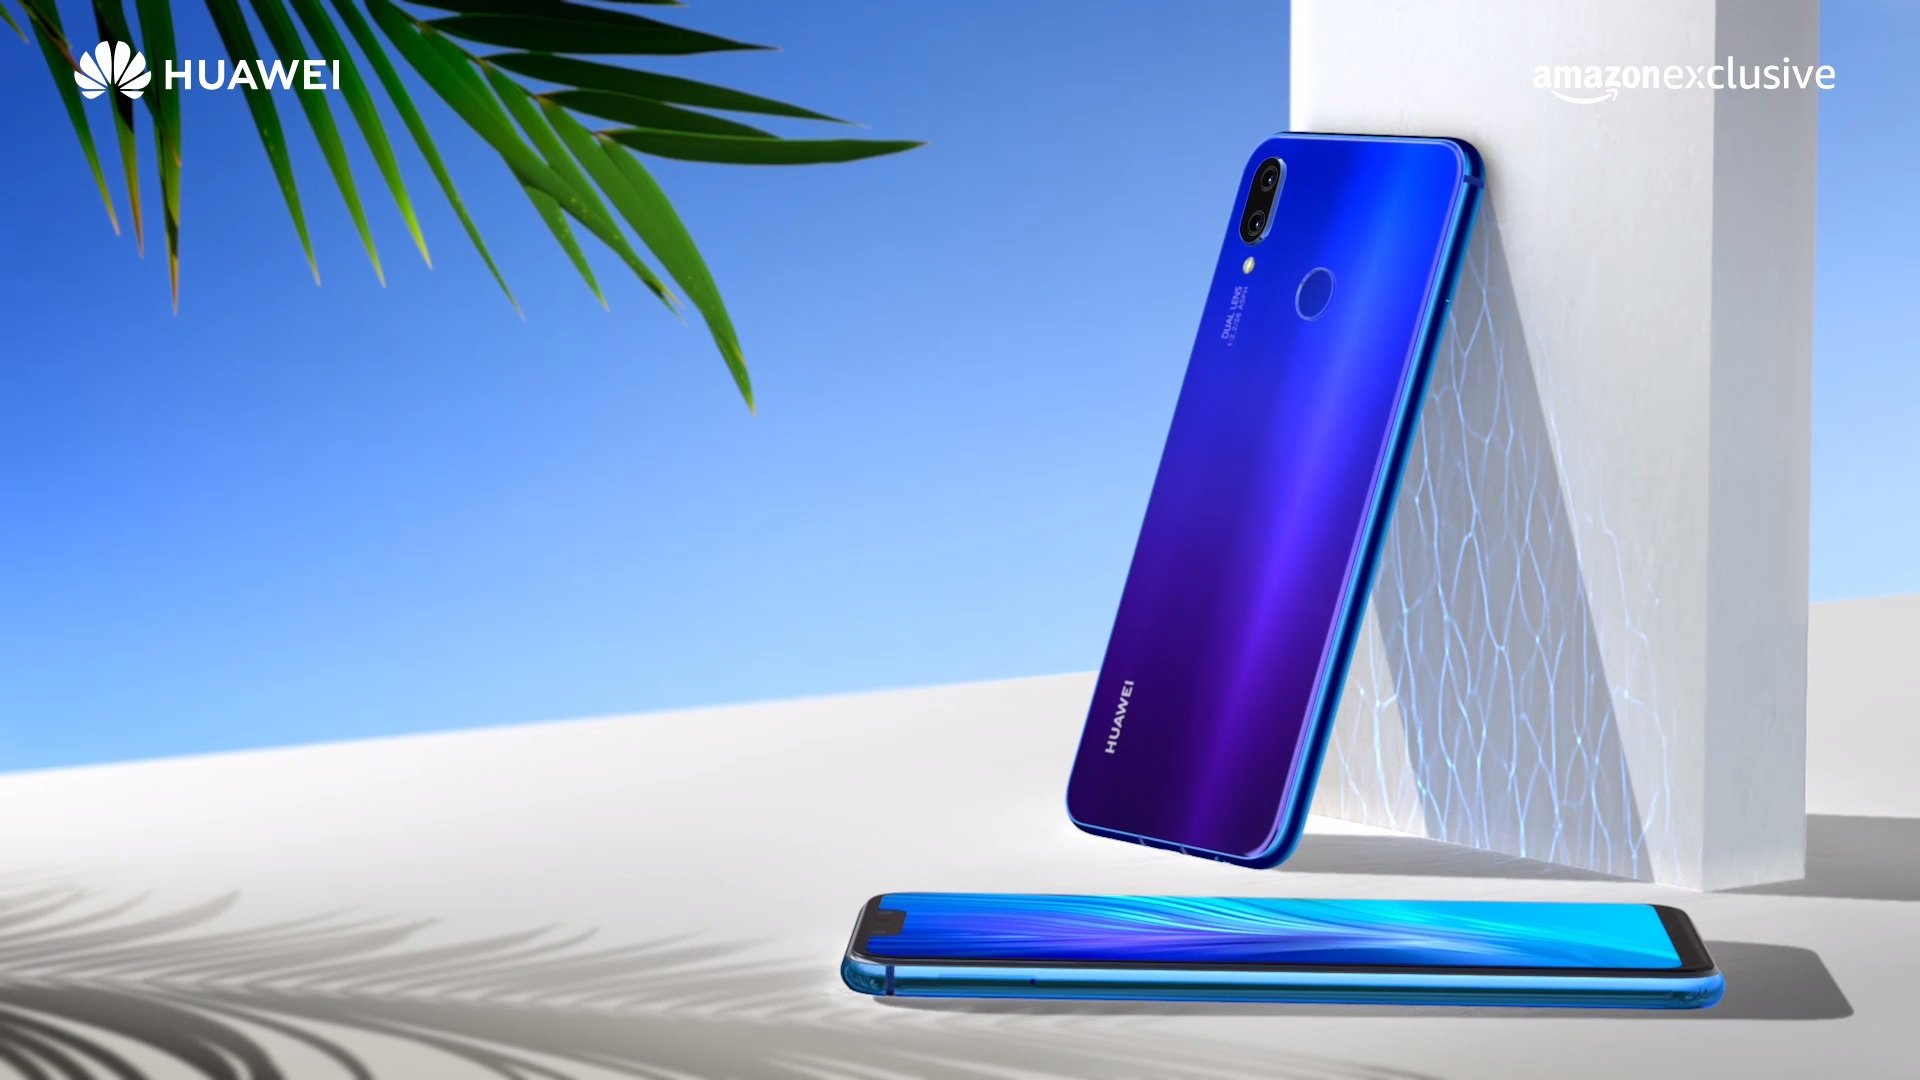 Huawei Nova 3i, 24MP Four AI Camera, 128GB